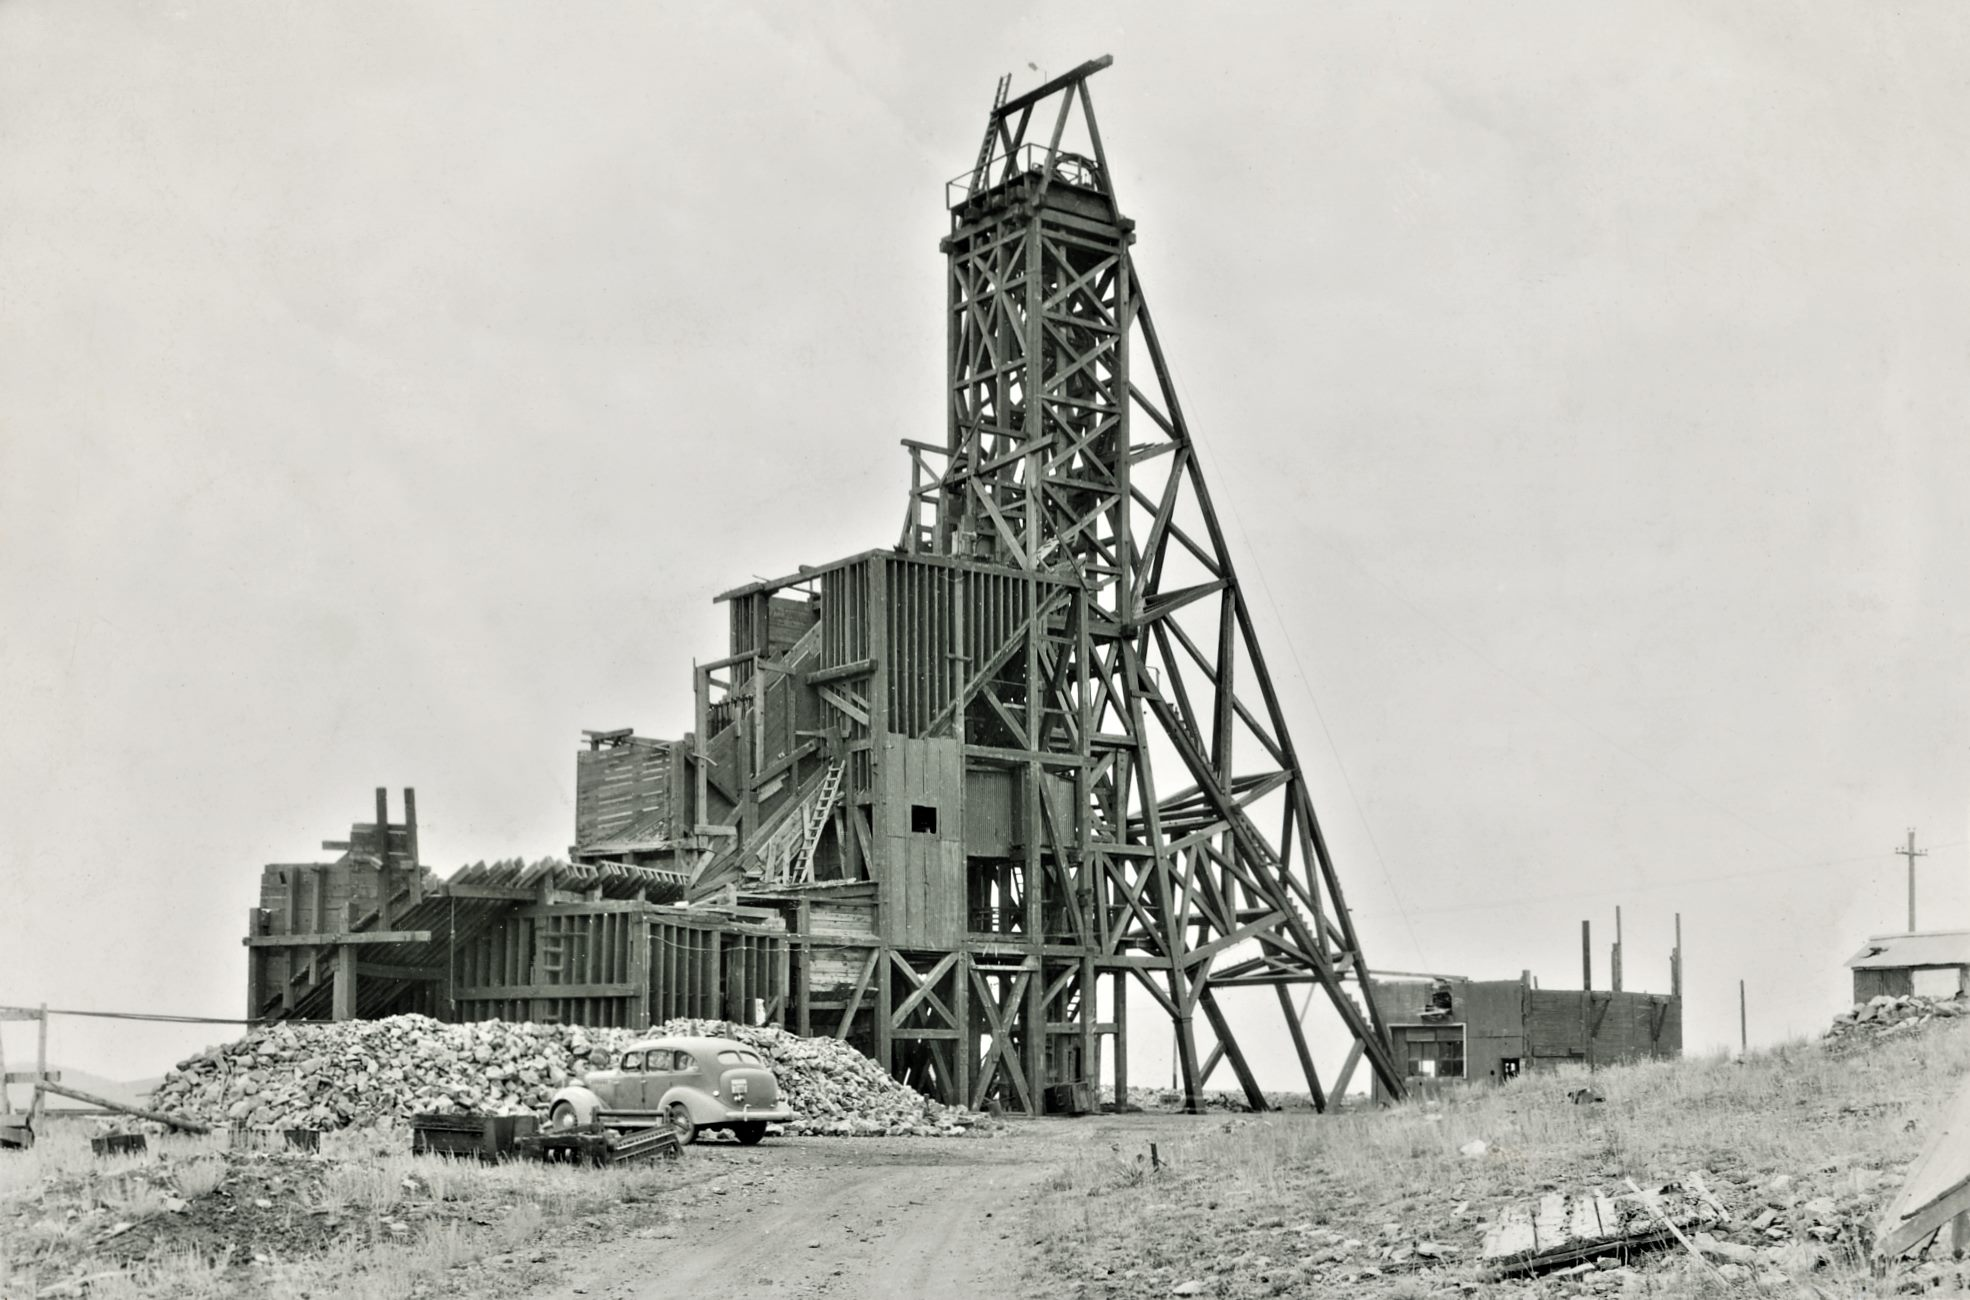 This somewhat enhanced view at the exposed Huge Head-Frame/Gallows-Frame of the old Stratton Independence Mine on Battle Mountain, outskirts of Victor, Colorado, show quite well how Huge the whole structure was! Dating this view is hard, I think it is from around 1940, but I do not know. There is a car parked below this mine structure, and that seems to have a License-plate of 43-660 but I can't tell what else it might have written above the numbers, so I can't date the image from that either…    The whole structure is quite massive, and all in wood it appears! Hard to imagine all this at one time enclosed in a massive Shaft-house type of structure, as I assume this is as it was built inside the structure back in the days. The left most parts, with the various bins I do think is more recent then the headframe itself, but I dare not say anything as this is beyond my knowledge.